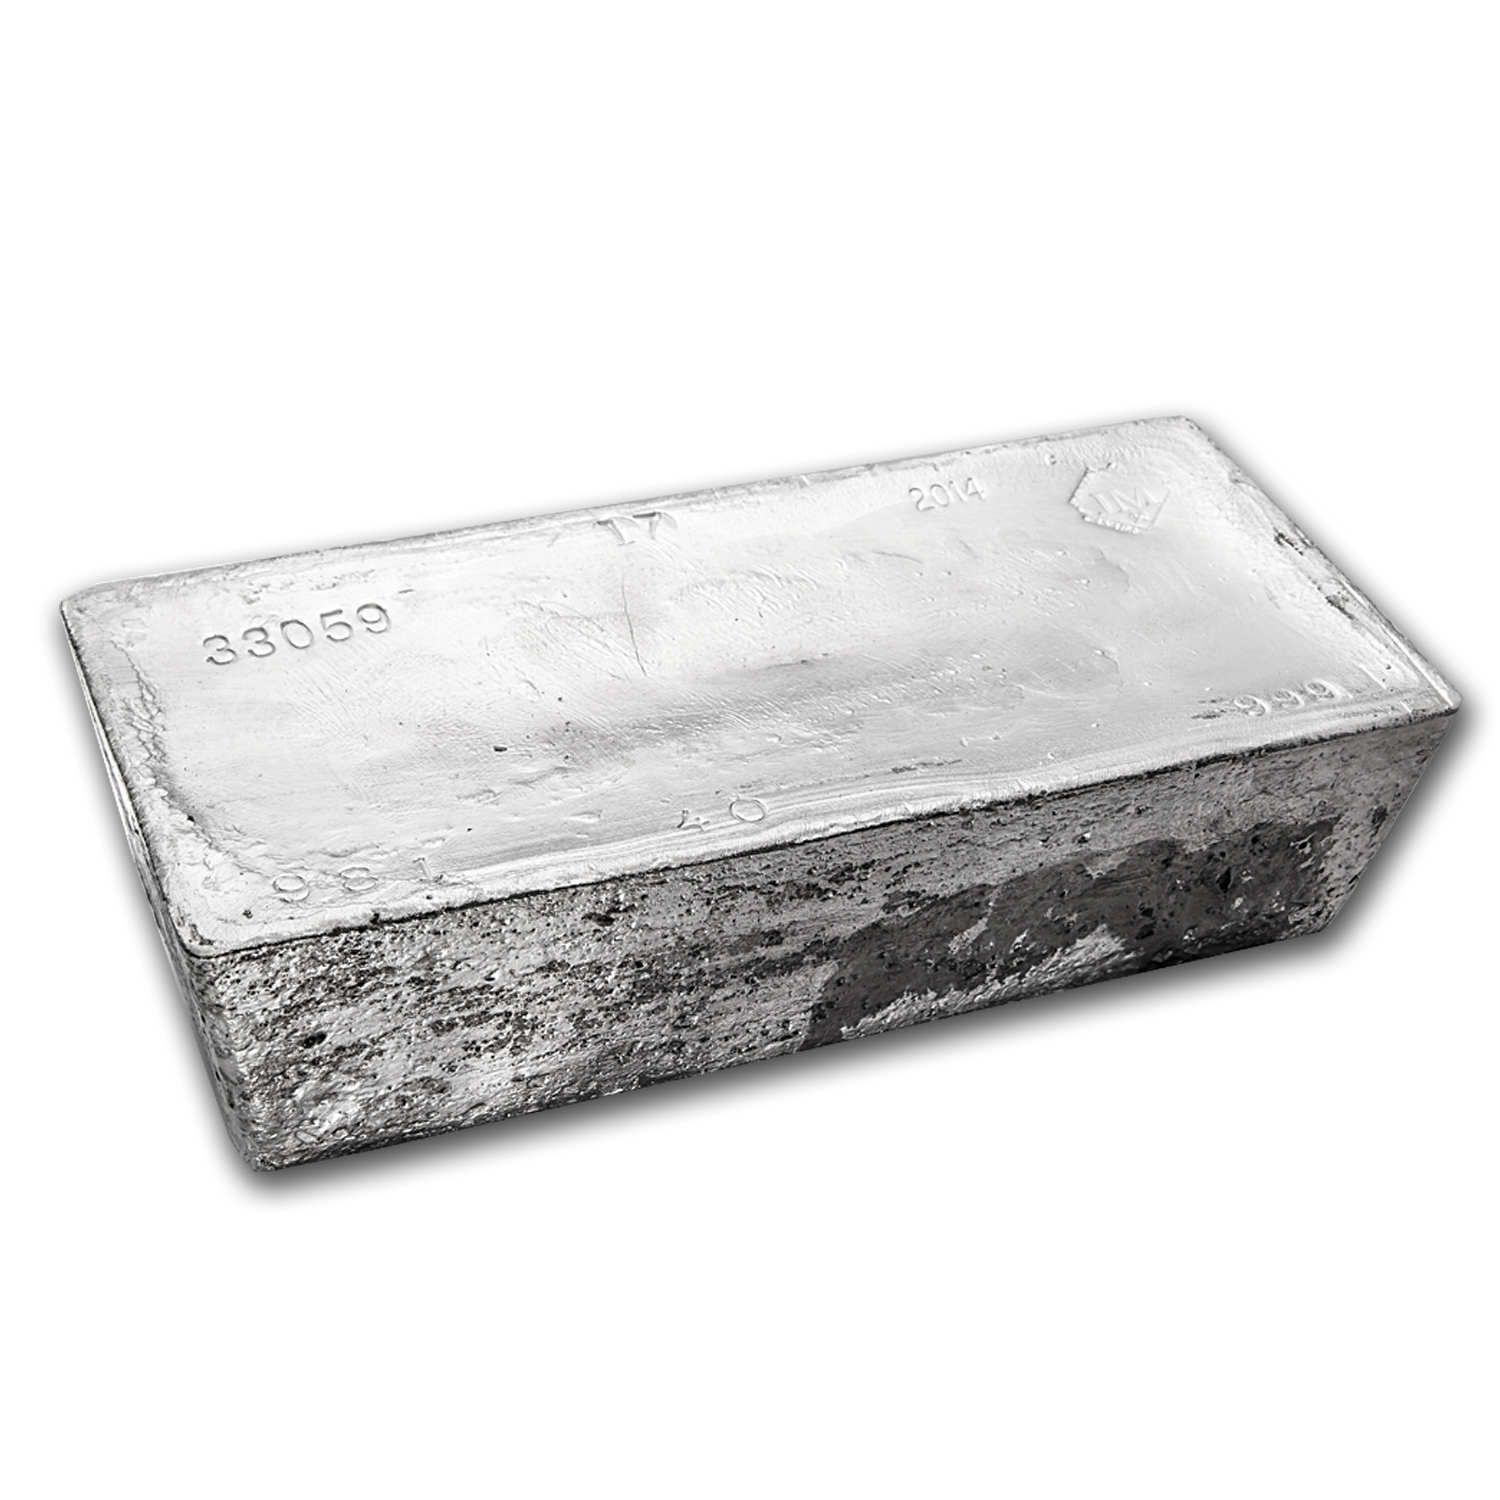 986.40 oz Silver Bars - Johnson Matthey